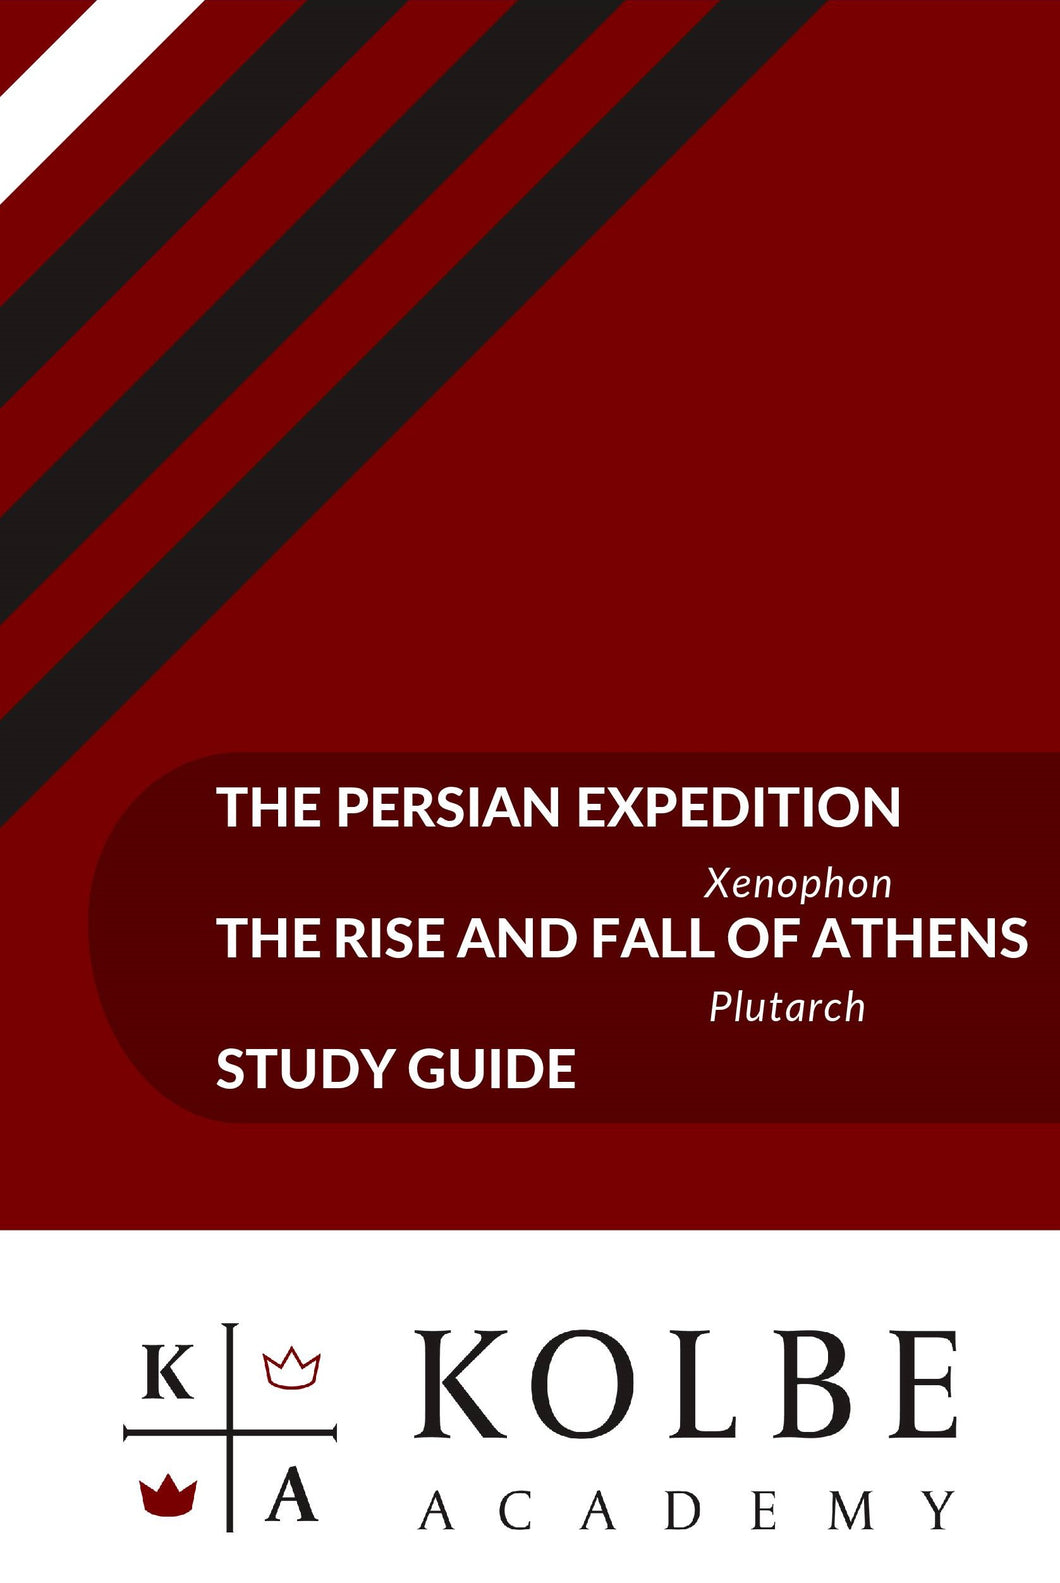 The Persian Expedition & Rise and Fall of Athens Study Guide